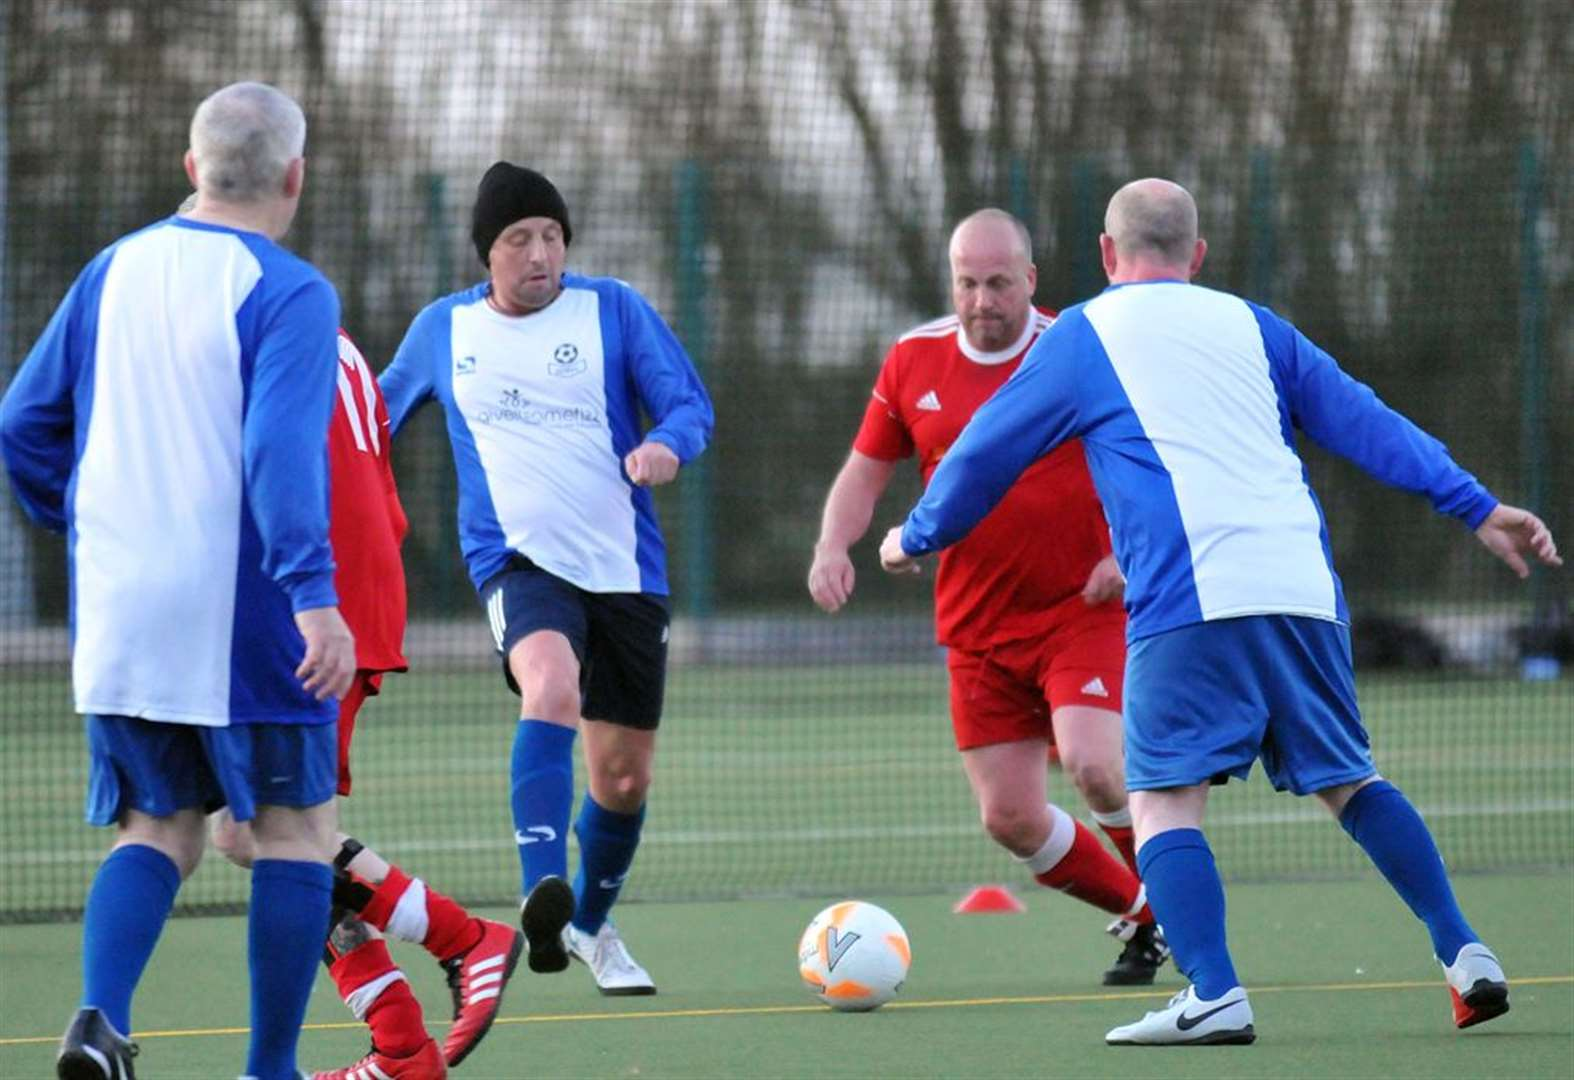 Now walking football comes to Holbeach!